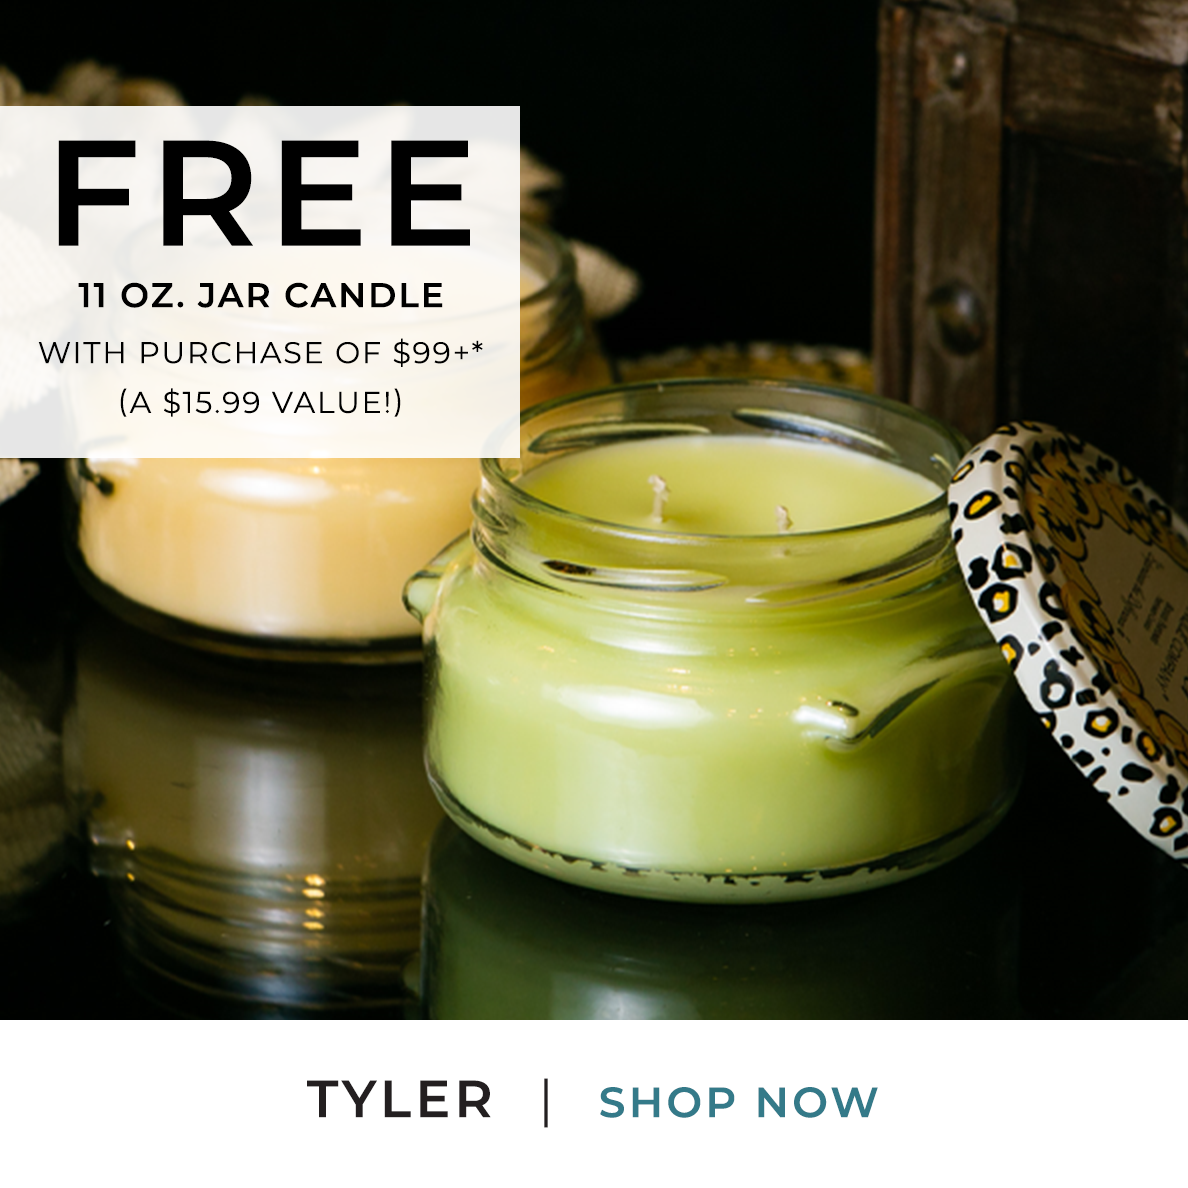 Tyler - FREE 11 oz. Jar Candle with Purchase of $99+ - A $15.99 Value